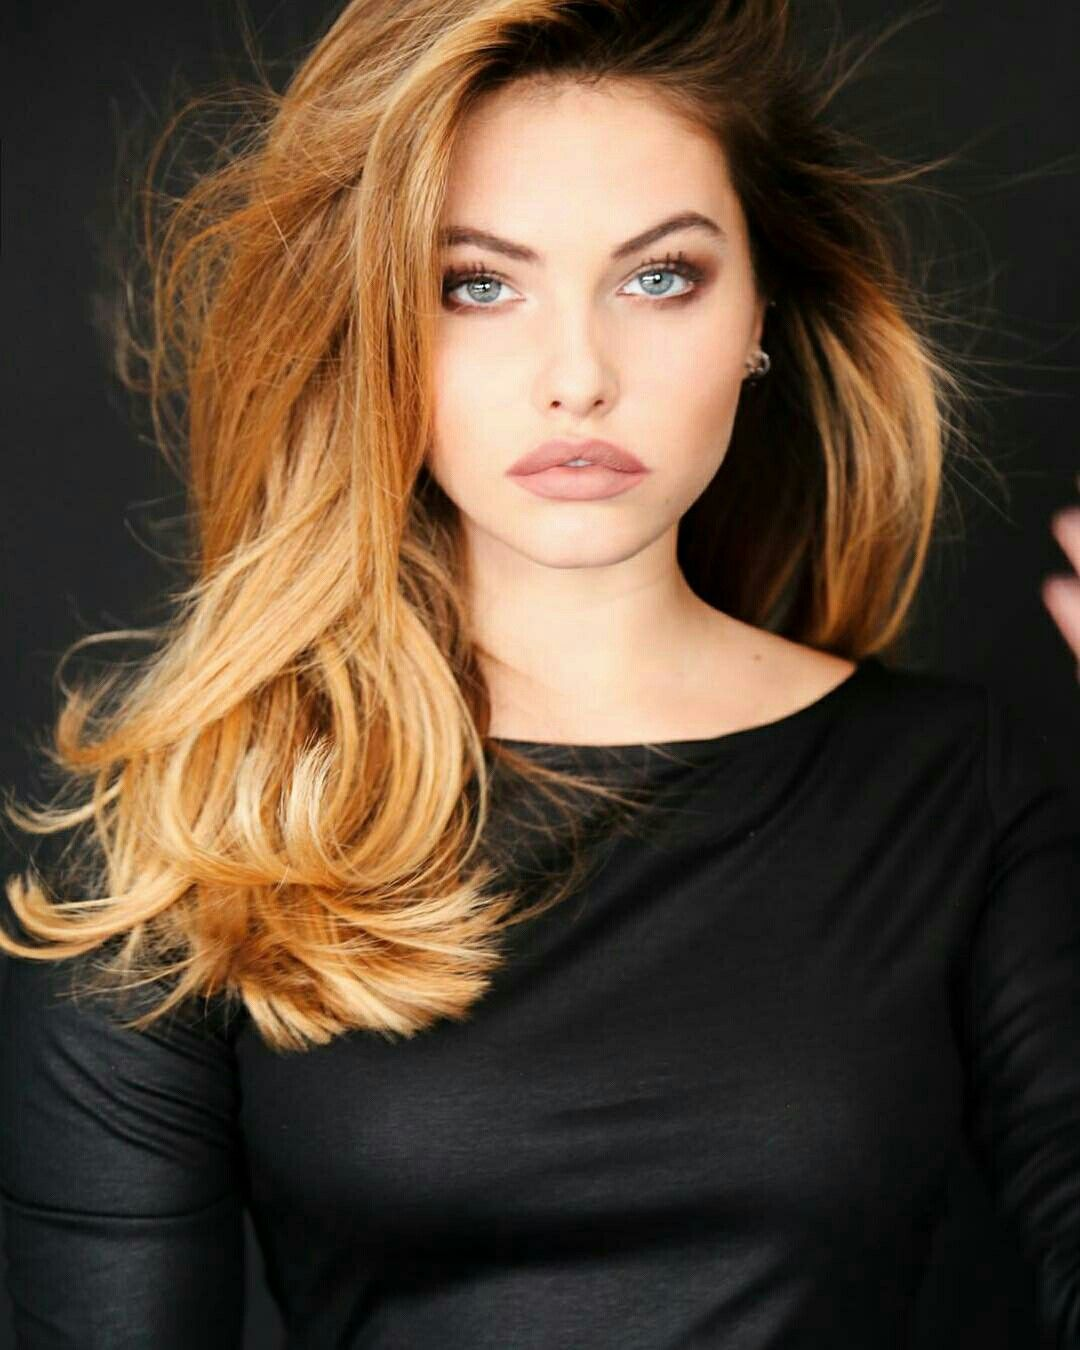 Most Beautiful Girl in the World Thylane Blondeau Is 18